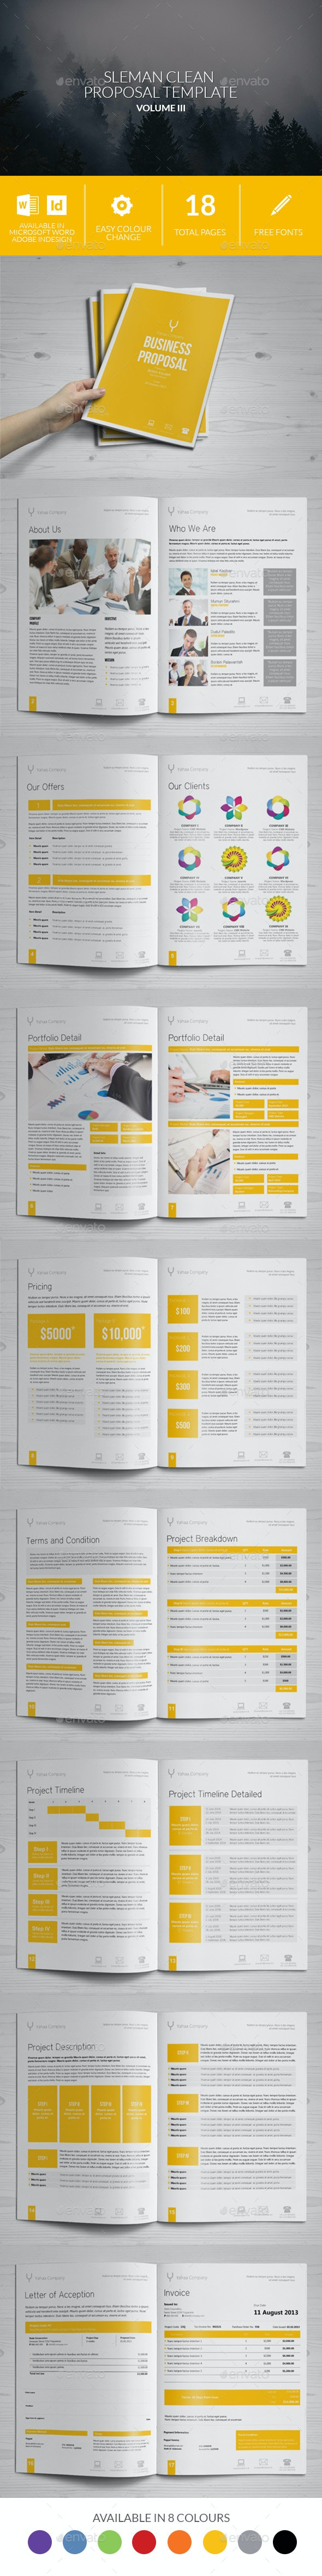 Sleman Clean Proposal Template Volume 3 - Proposals & Invoices Stationery